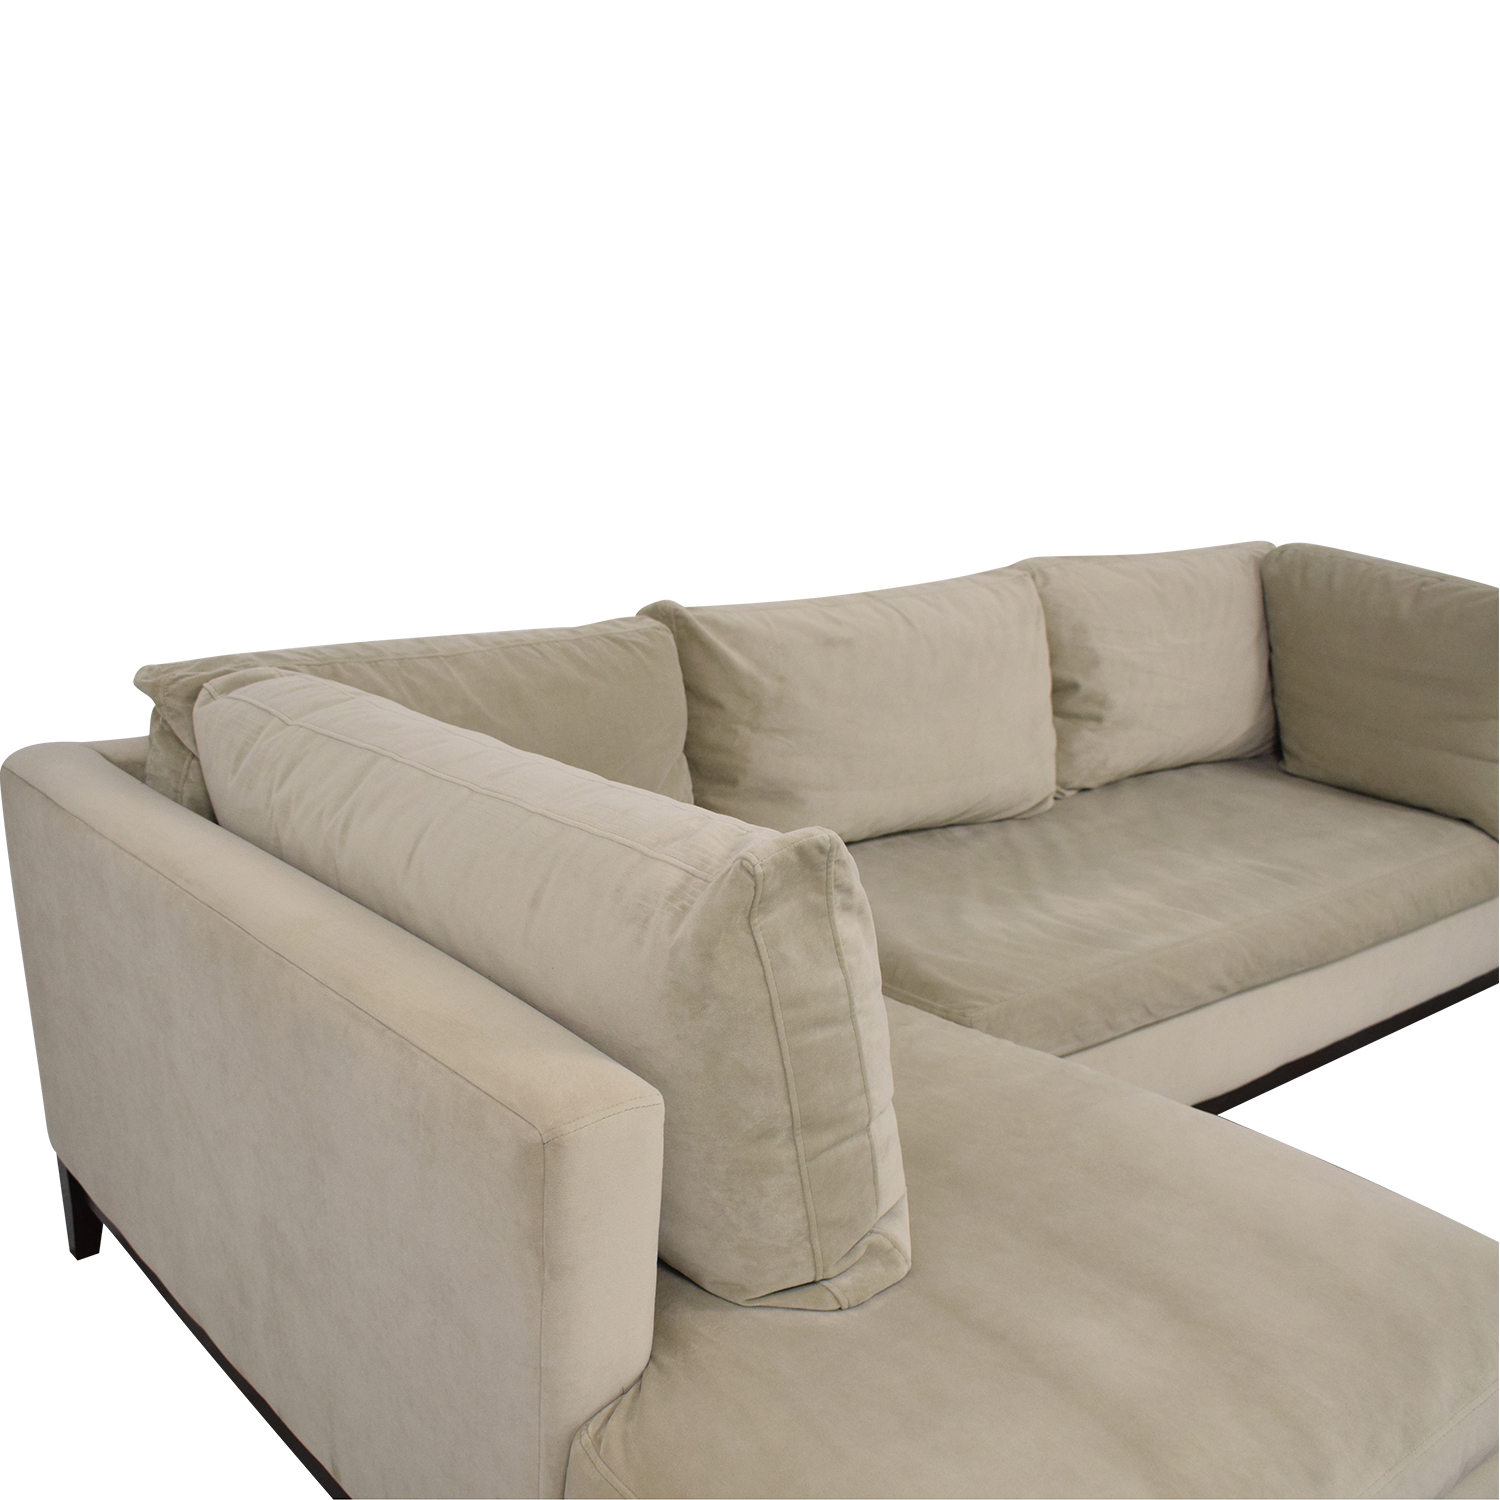 West Elm West Elm Sectional Sofa with Chaise used